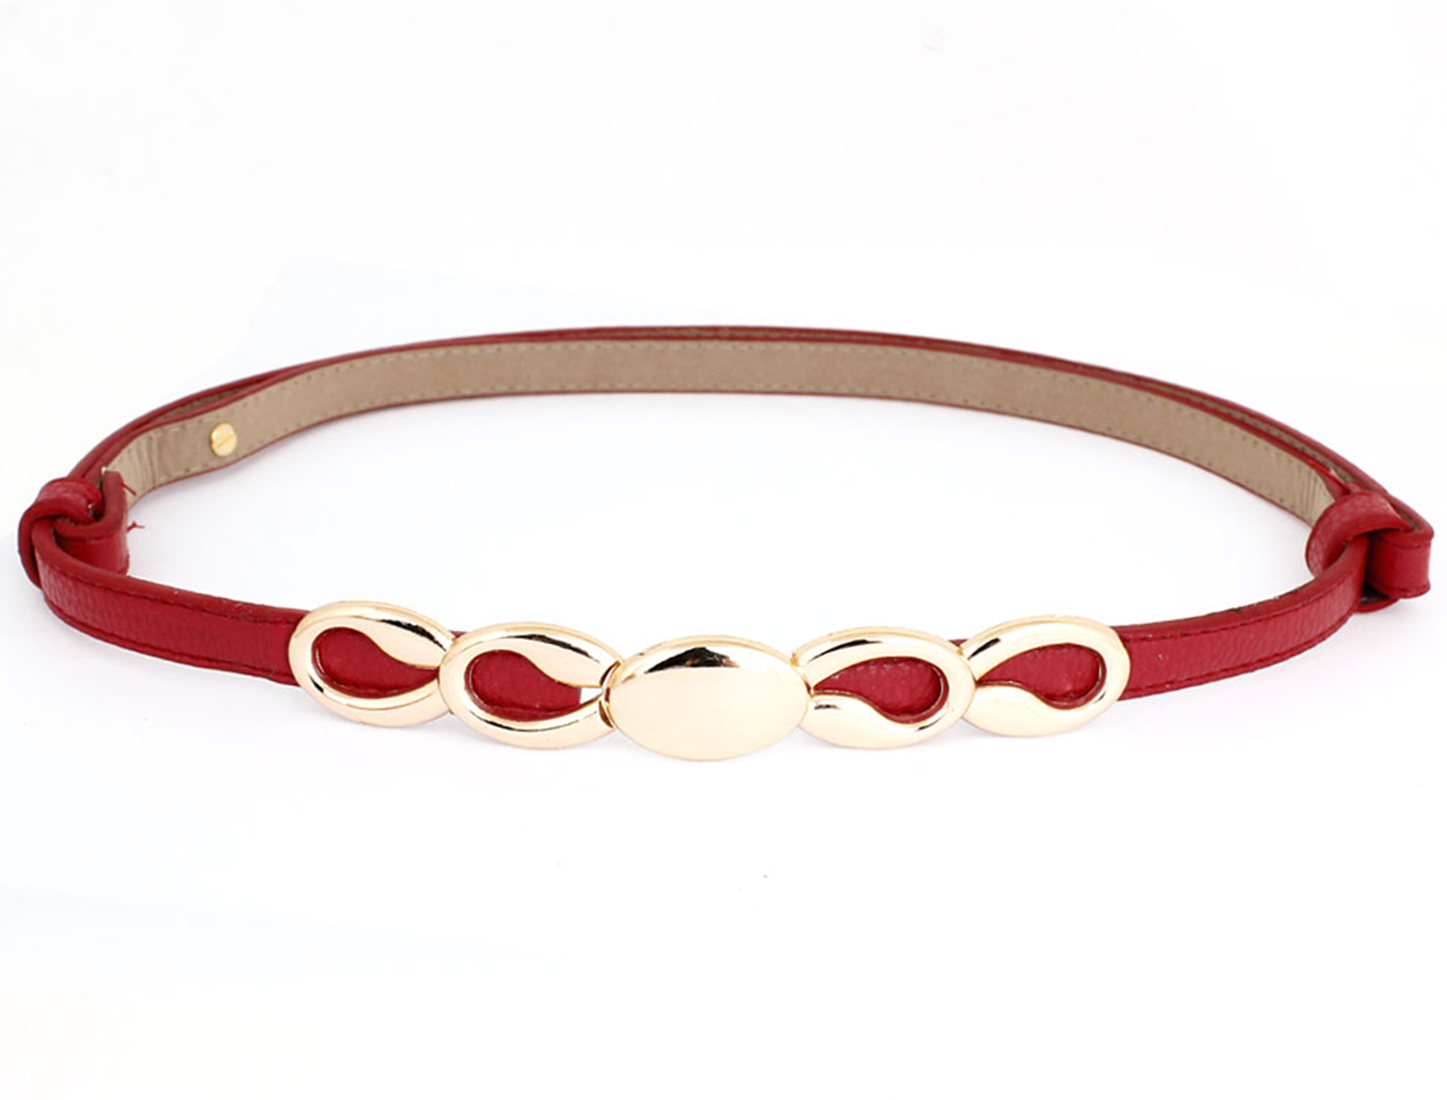 Women Eight Style Metal Interlocking Buckle Adjustable Skinny Belt Waistband Red